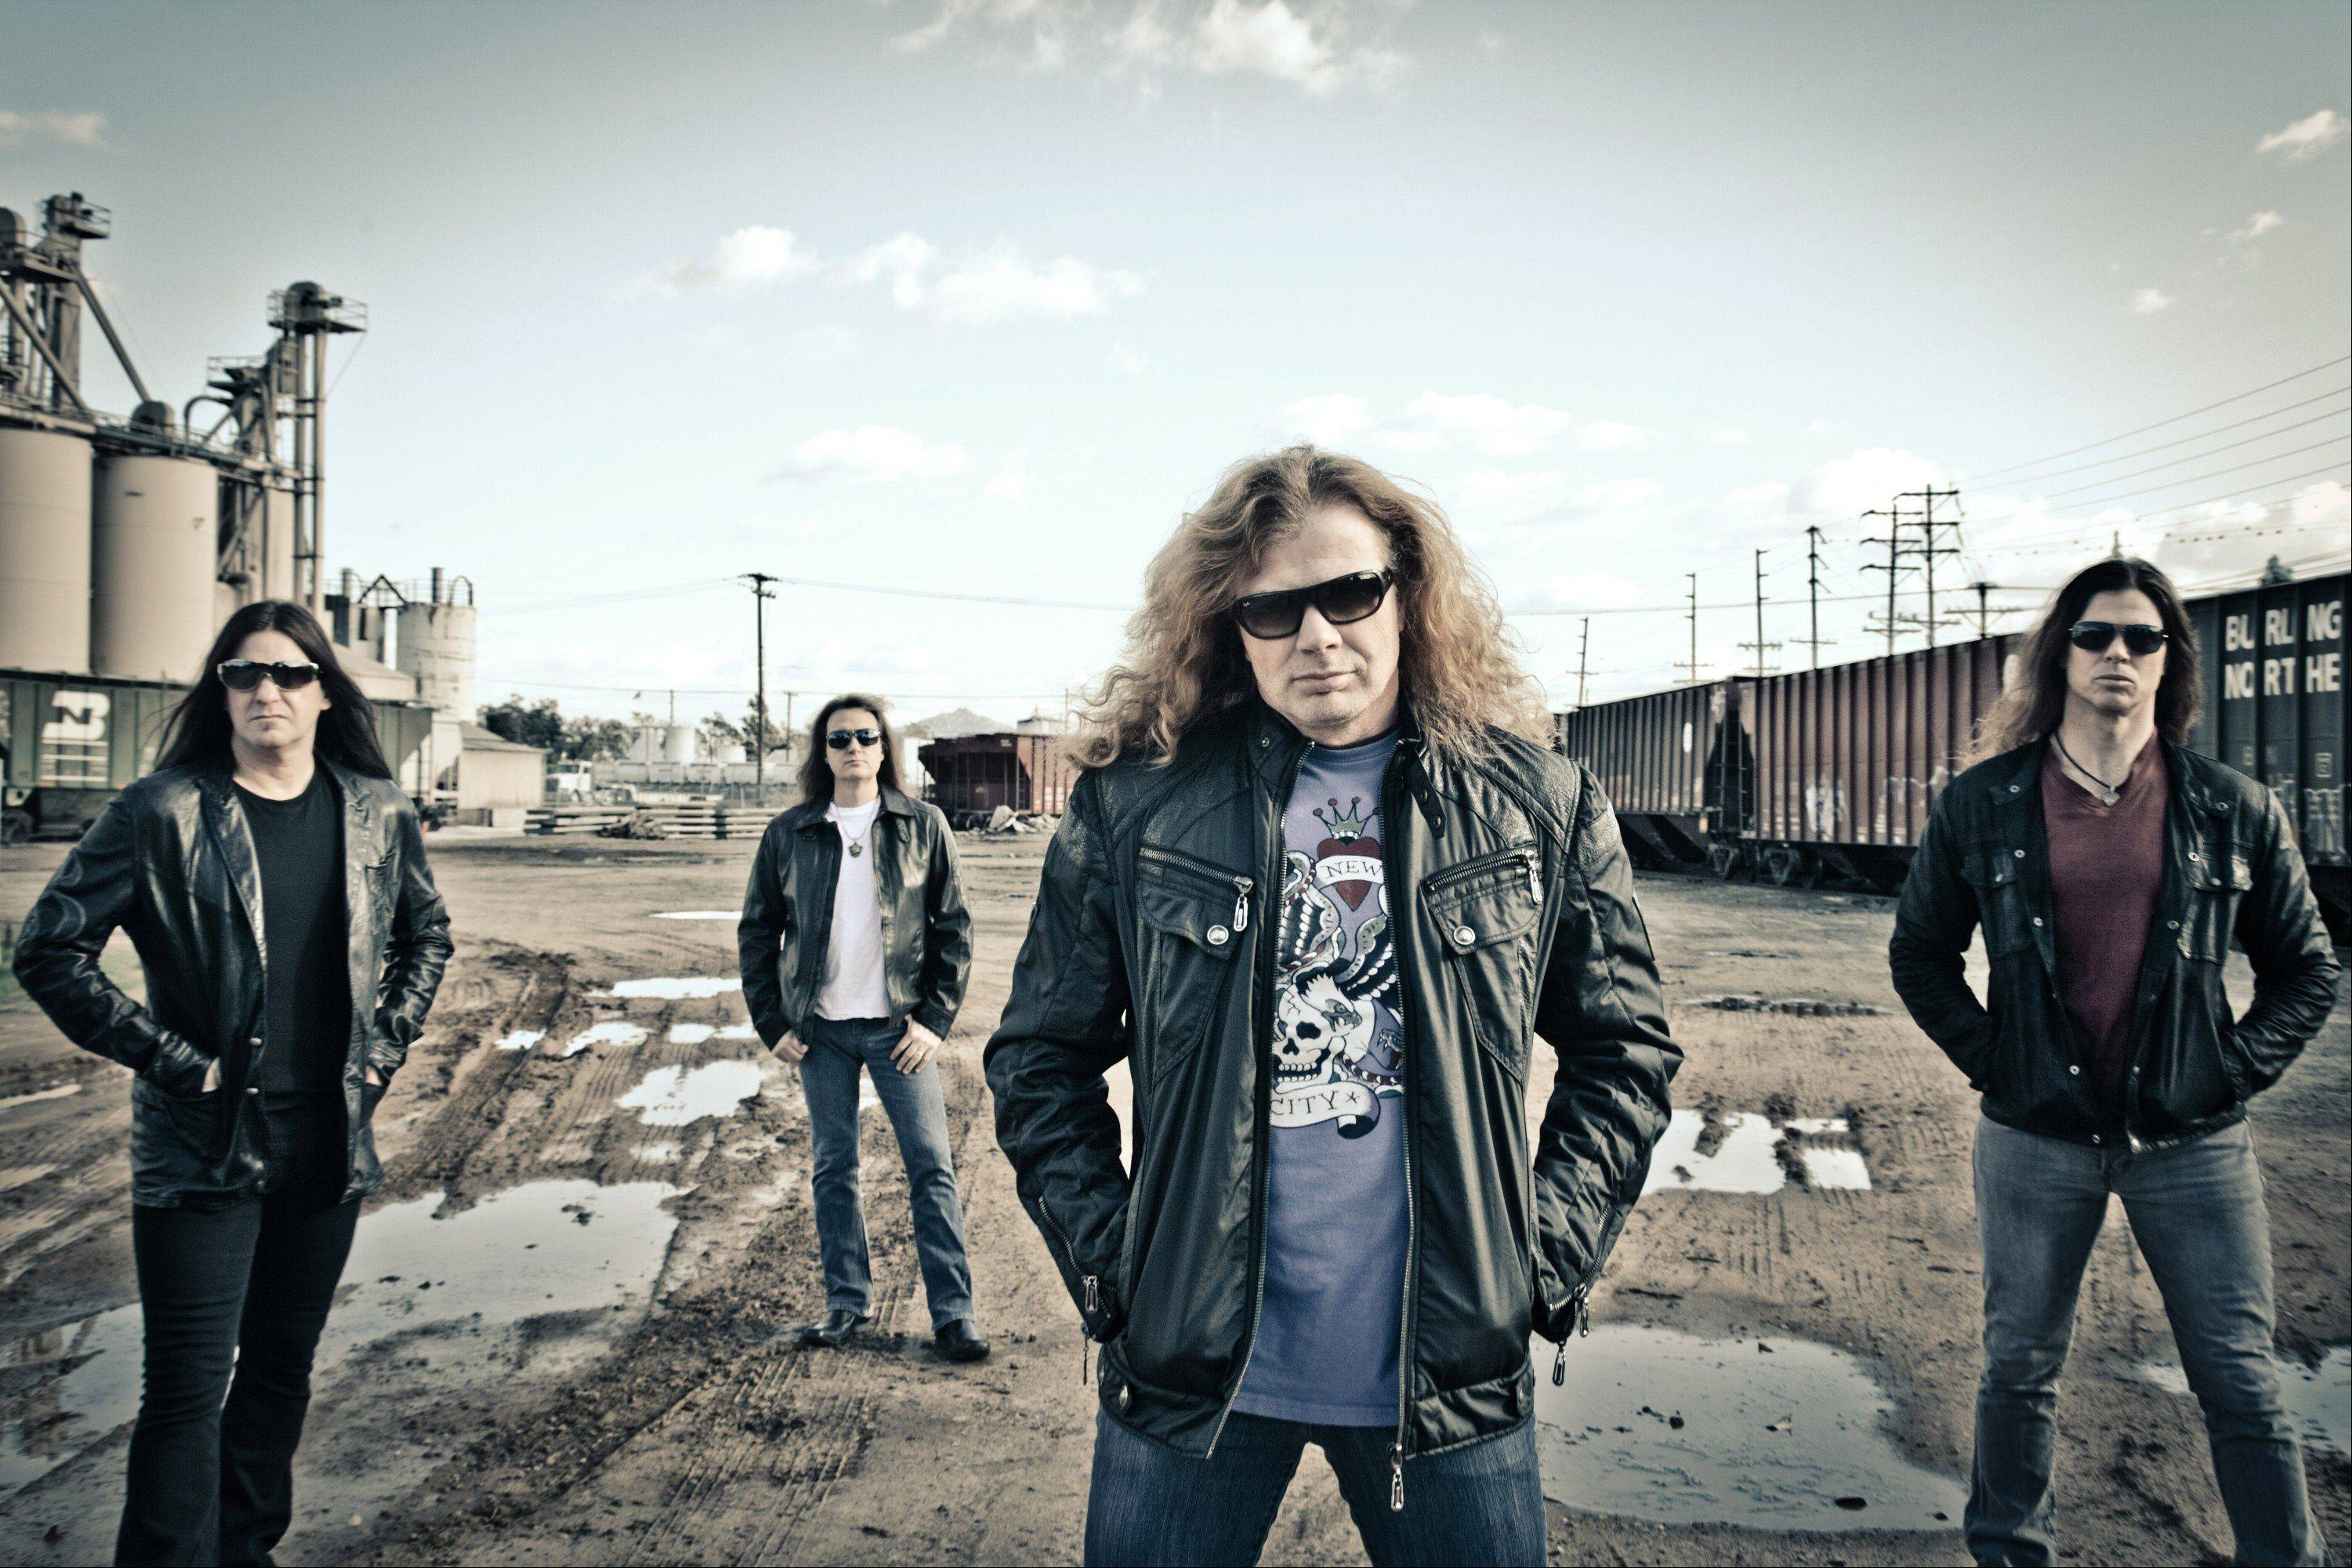 Megadeth performs July 9 when Gigantour stops at Allstate Arena in Rosemont. The concert also features Black Label Society, Device, Hellyea, Death Division and former Metallica bassist Jason Newsted's latest band, Newsted.